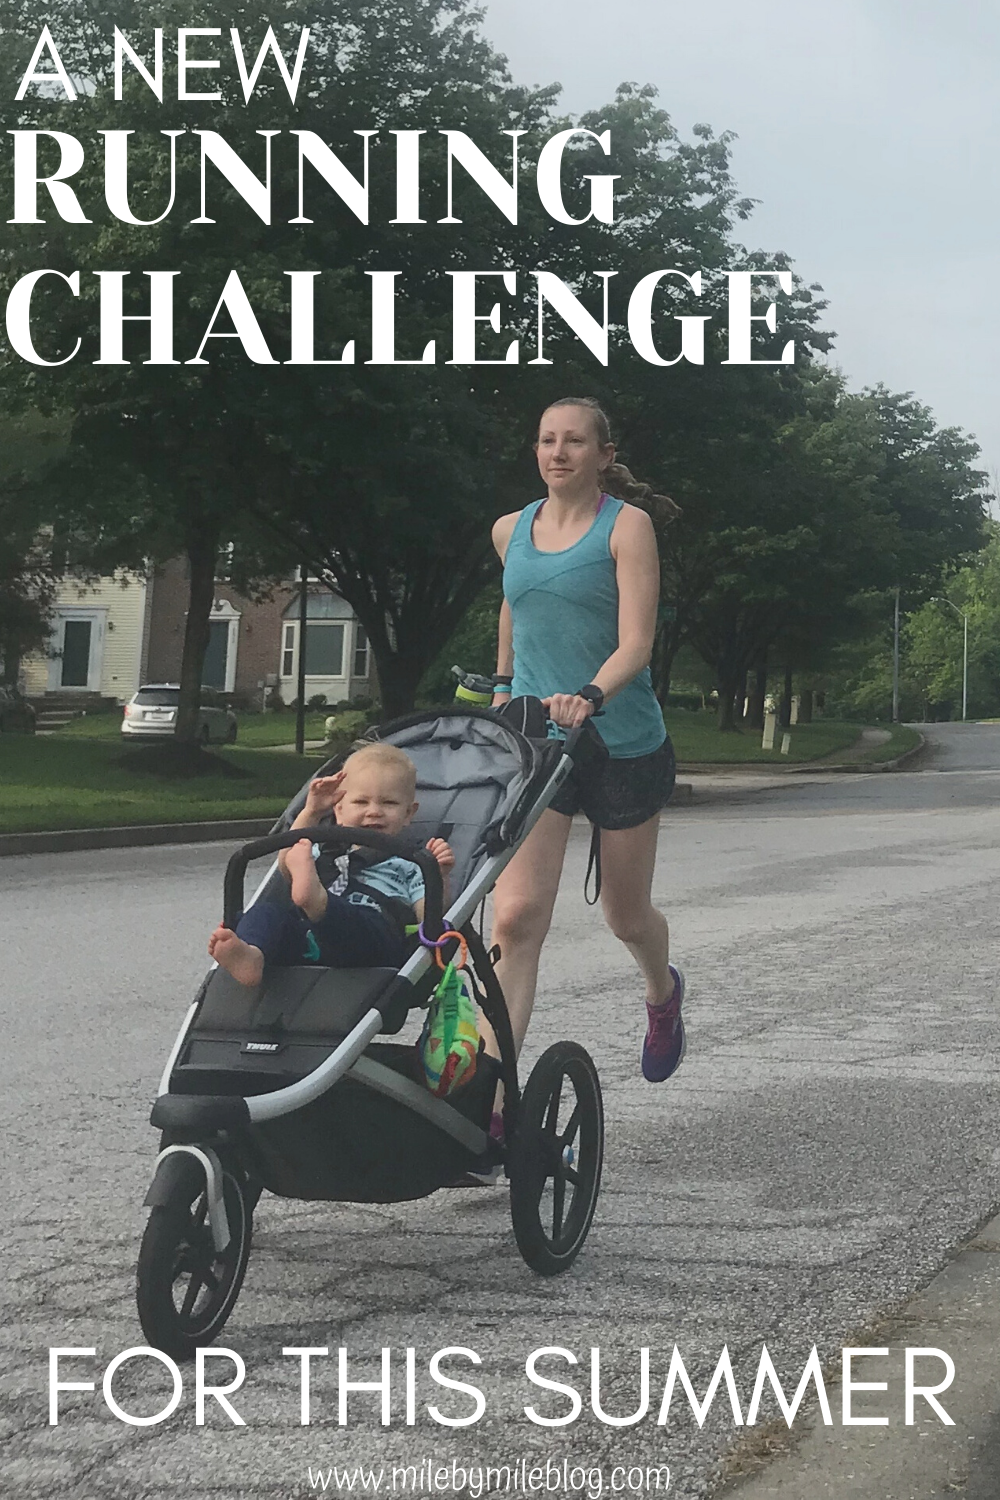 Without any races planned, I've been wanting to do a new running challenge. I found one that I think will be helpful for me during COVID-19 and while I am stroller running in the summer heat and focusing on strength training. This post is all about my new running challenge for this summer and why I chose this one. #running #challenge